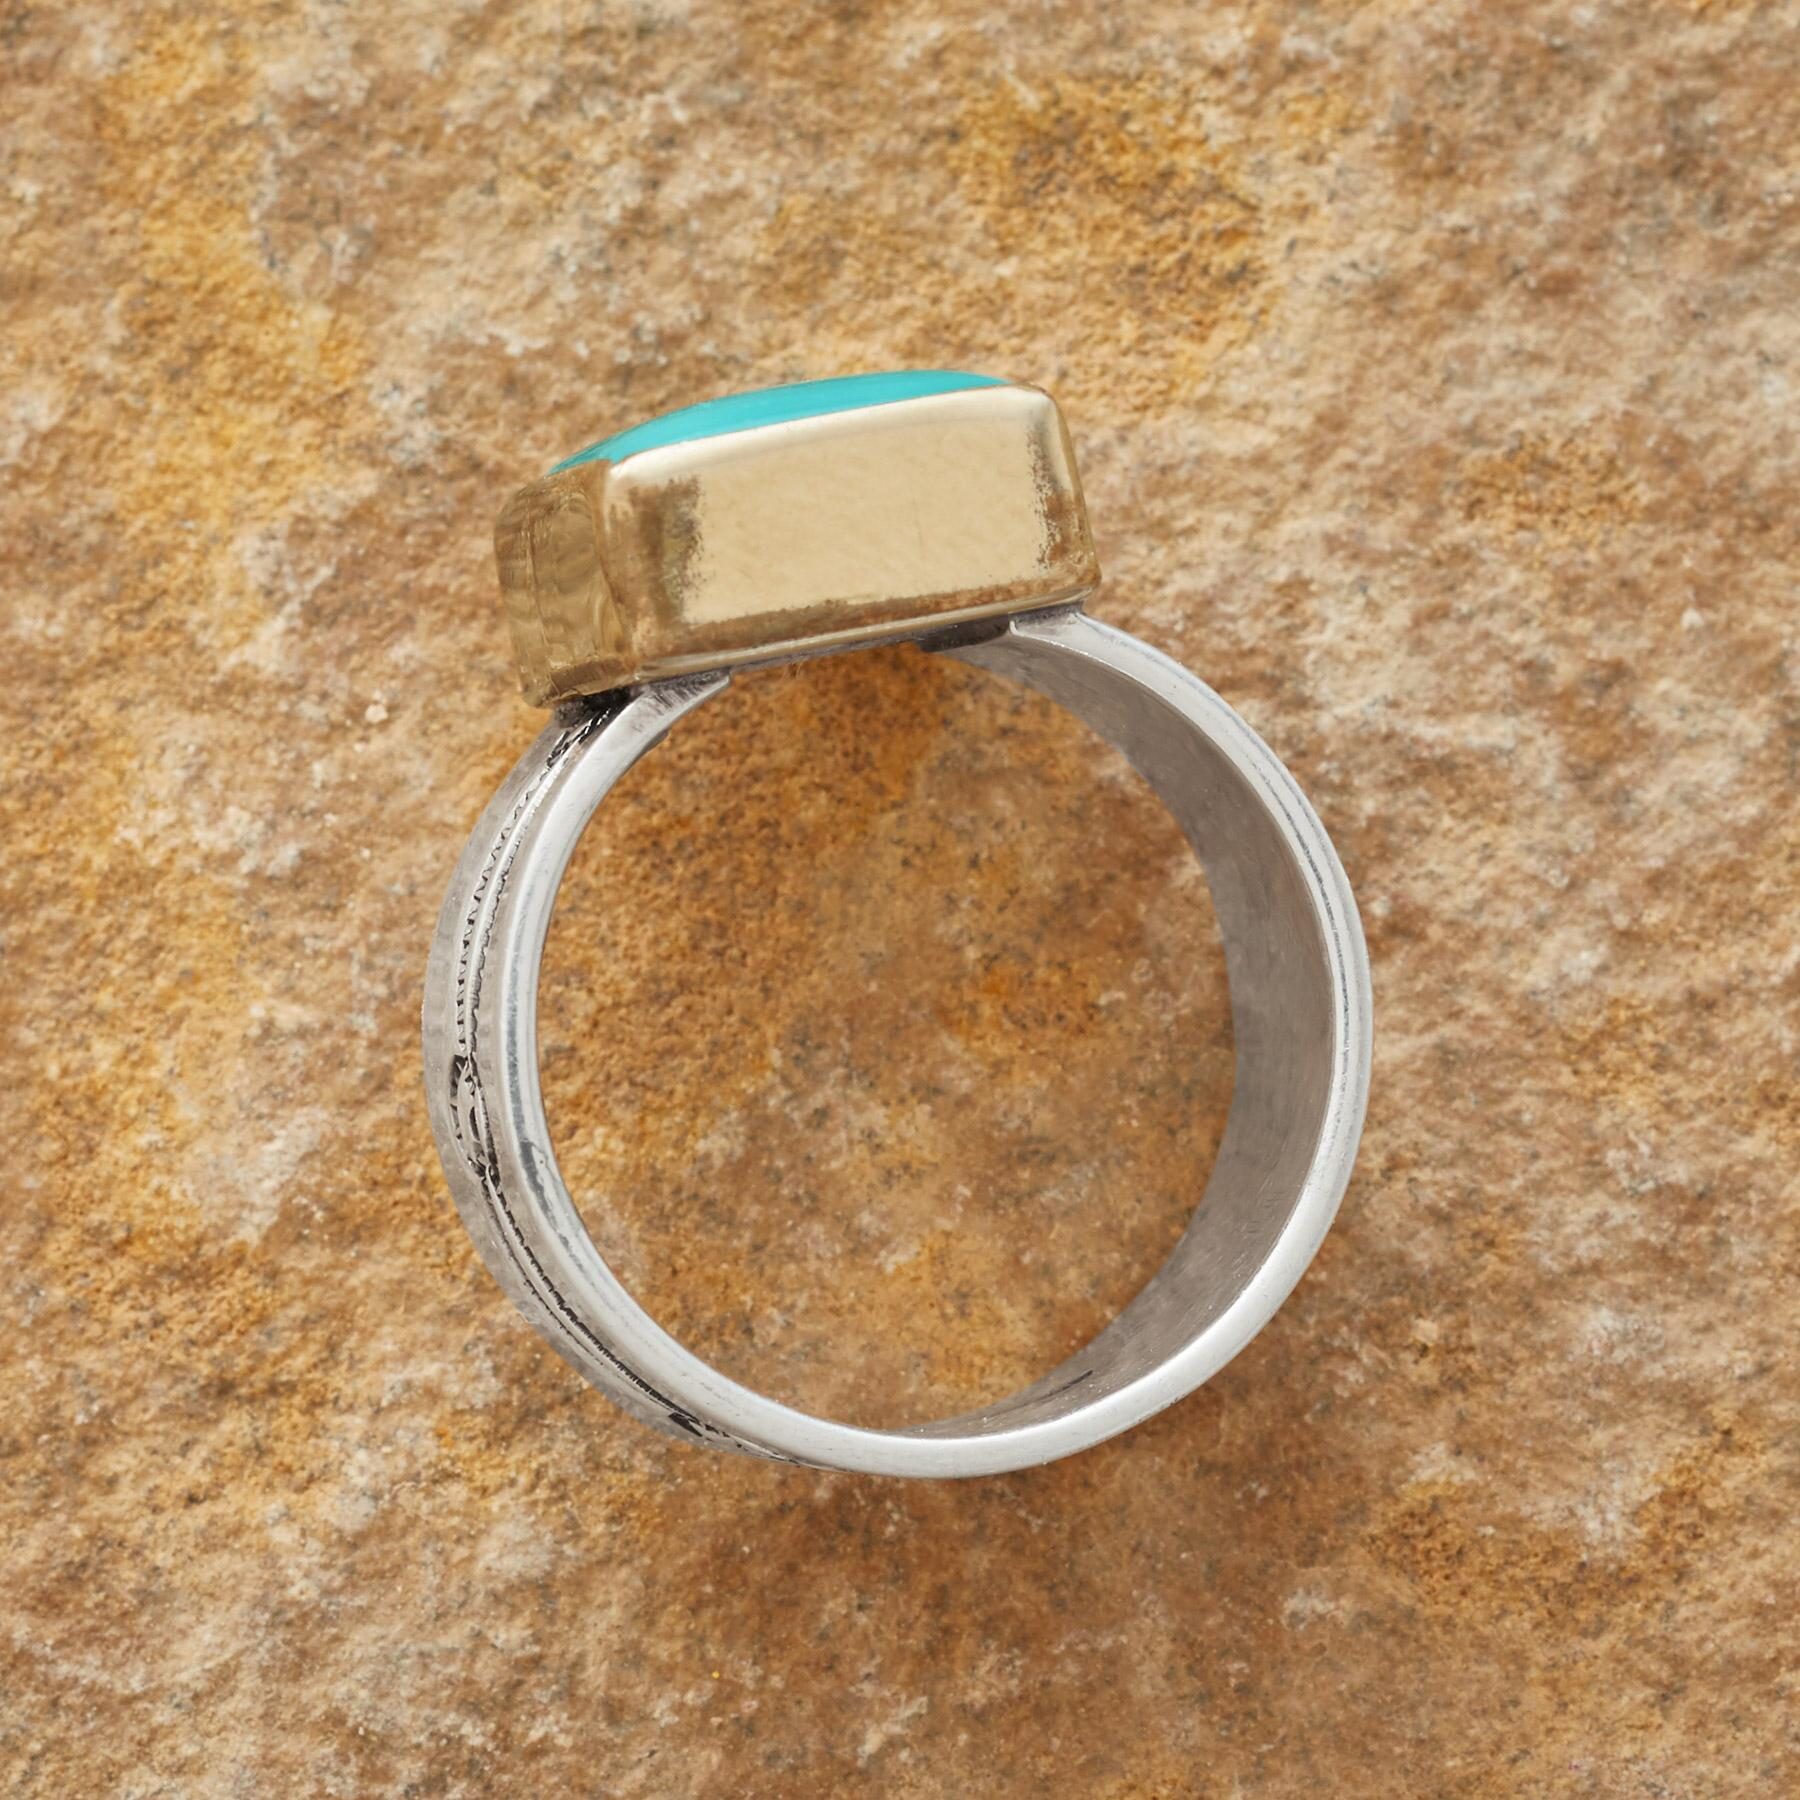 EL DORADO RING: View 2